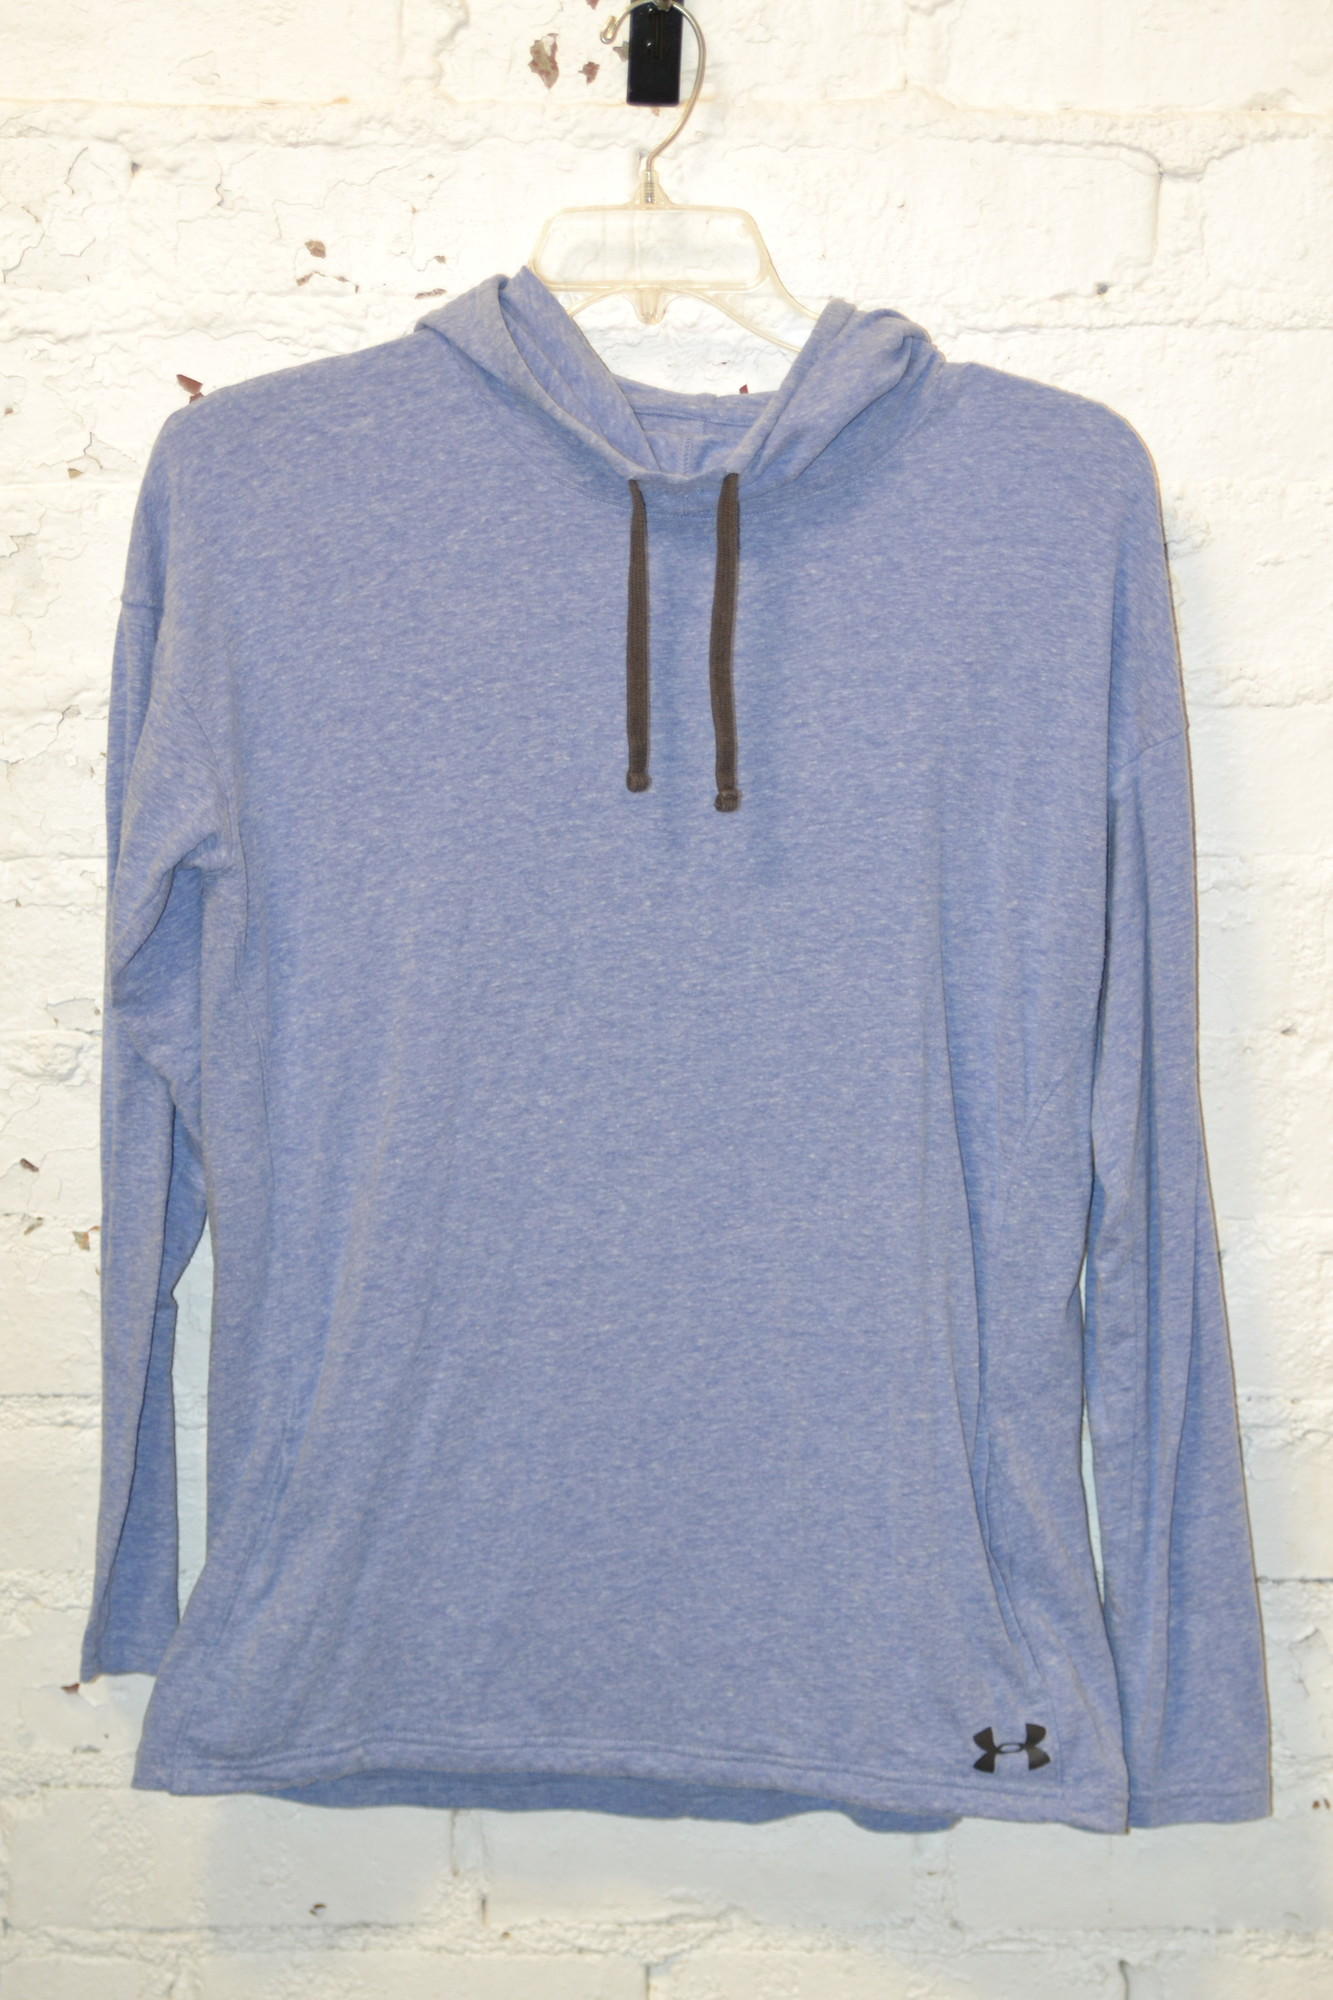 -Under Armour<br /> -Heat gear<br /> -Long sleeved<br /> -Hooded<br /> -Light weight<br /> -Purple color<br /> -Size large